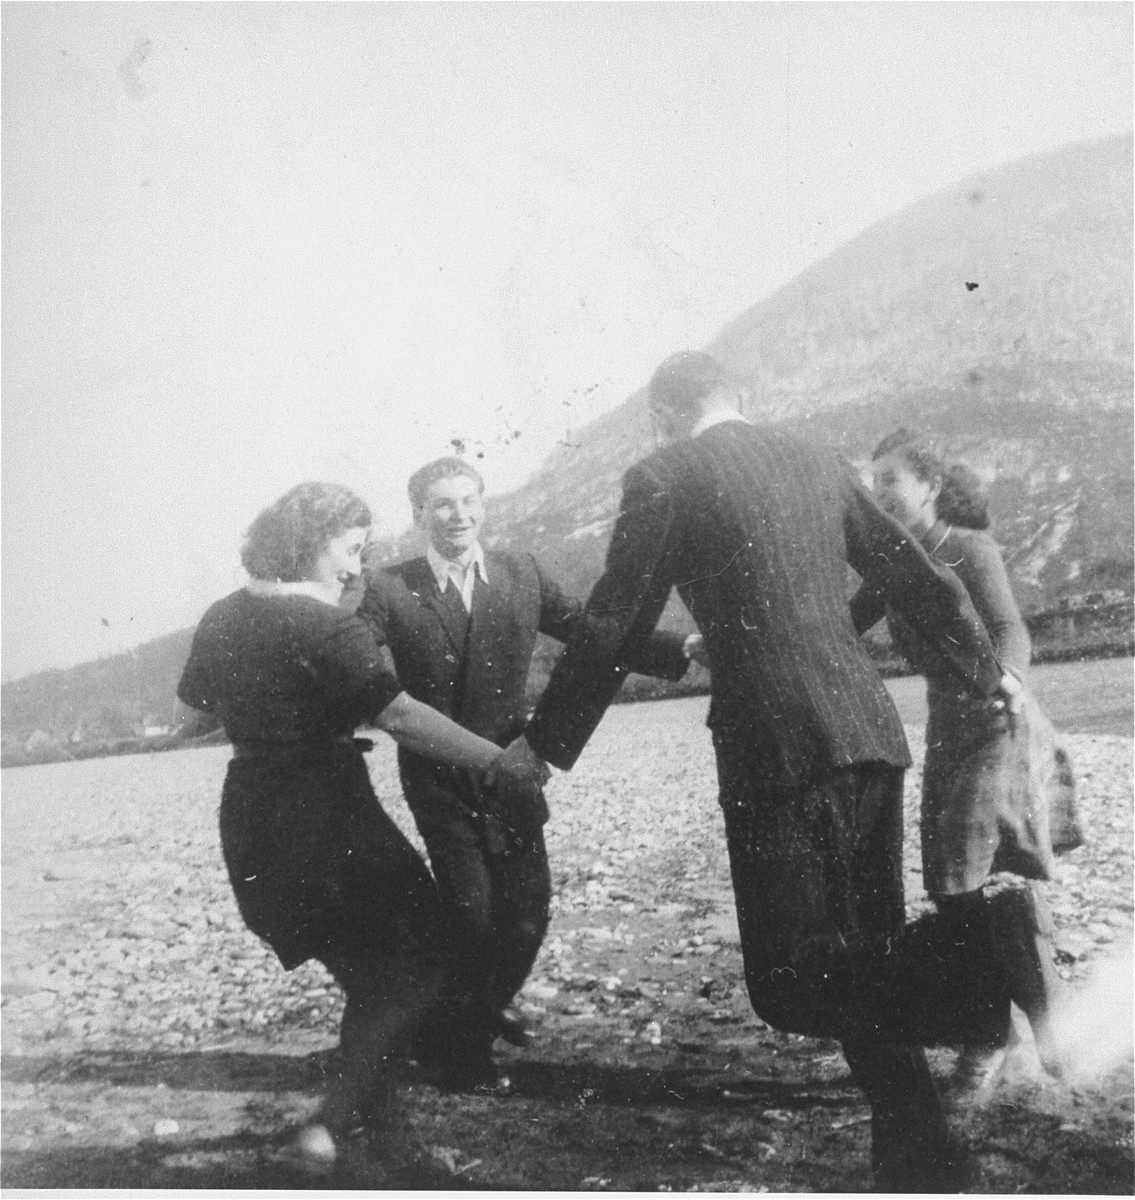 Members of the Hanoar Hatzioni Zionist youth movement in Tacovo, dance on the shore of the river Tissa.  Among those pictured are Frimet Ickovic.